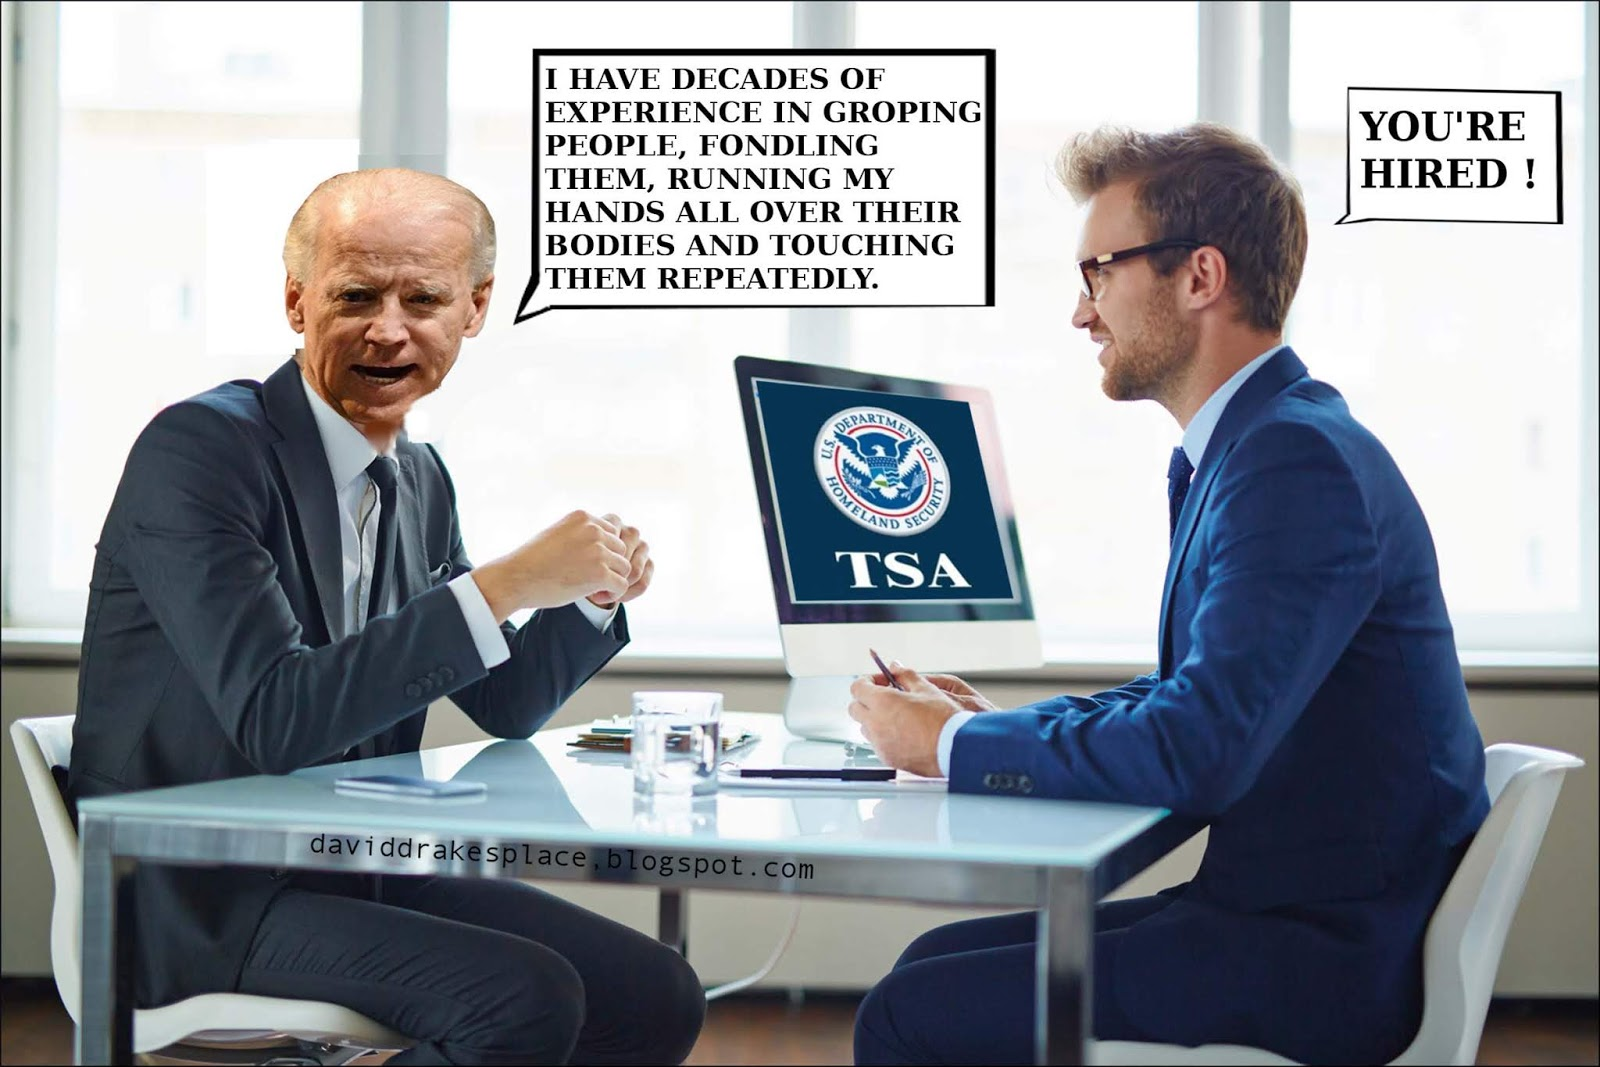 Biden hired by TSA